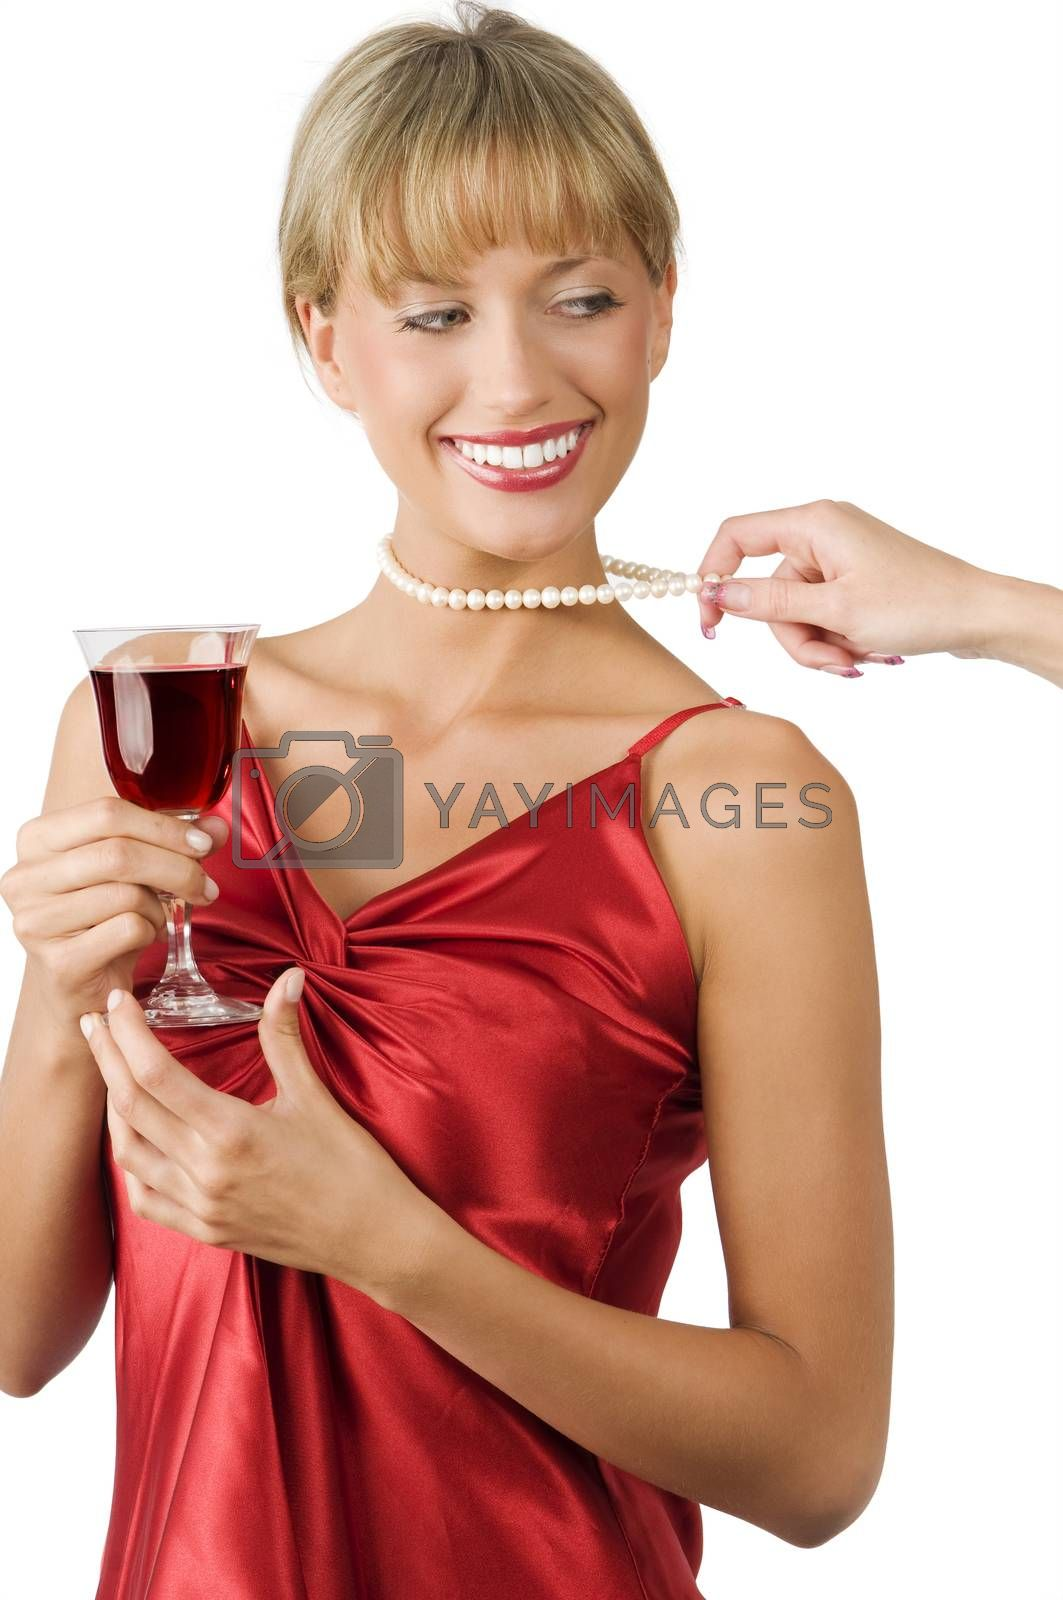 Royalty free image of pulling necklace by fotoCD